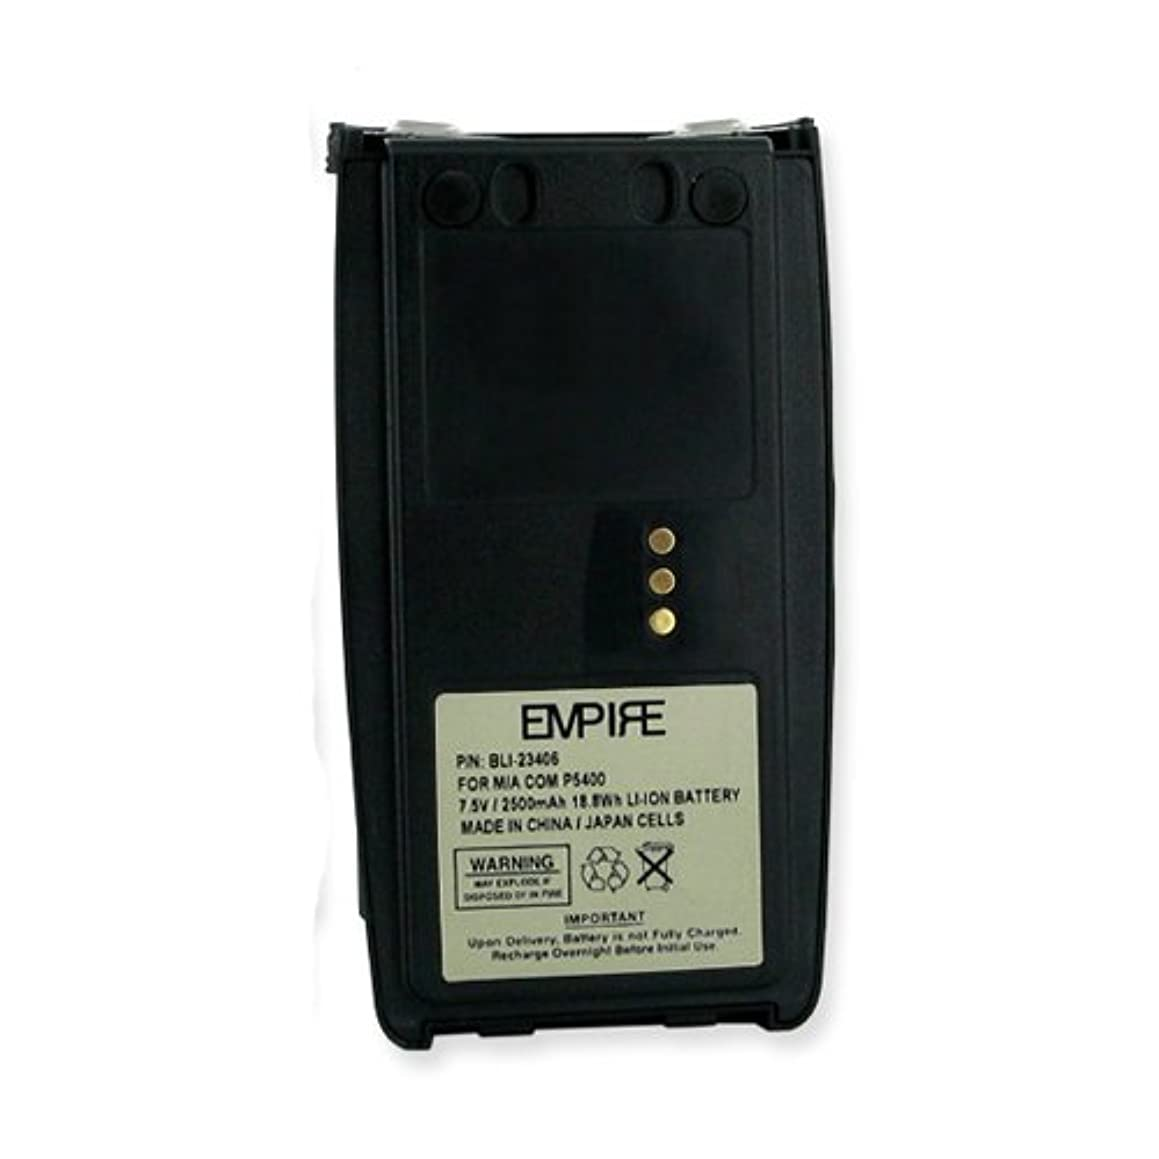 Harris XG-25P 2-Way Radio Battery (Li-Ion 2500mAh) Rechargeable Battery - Replacement for Harris BT-023406-005